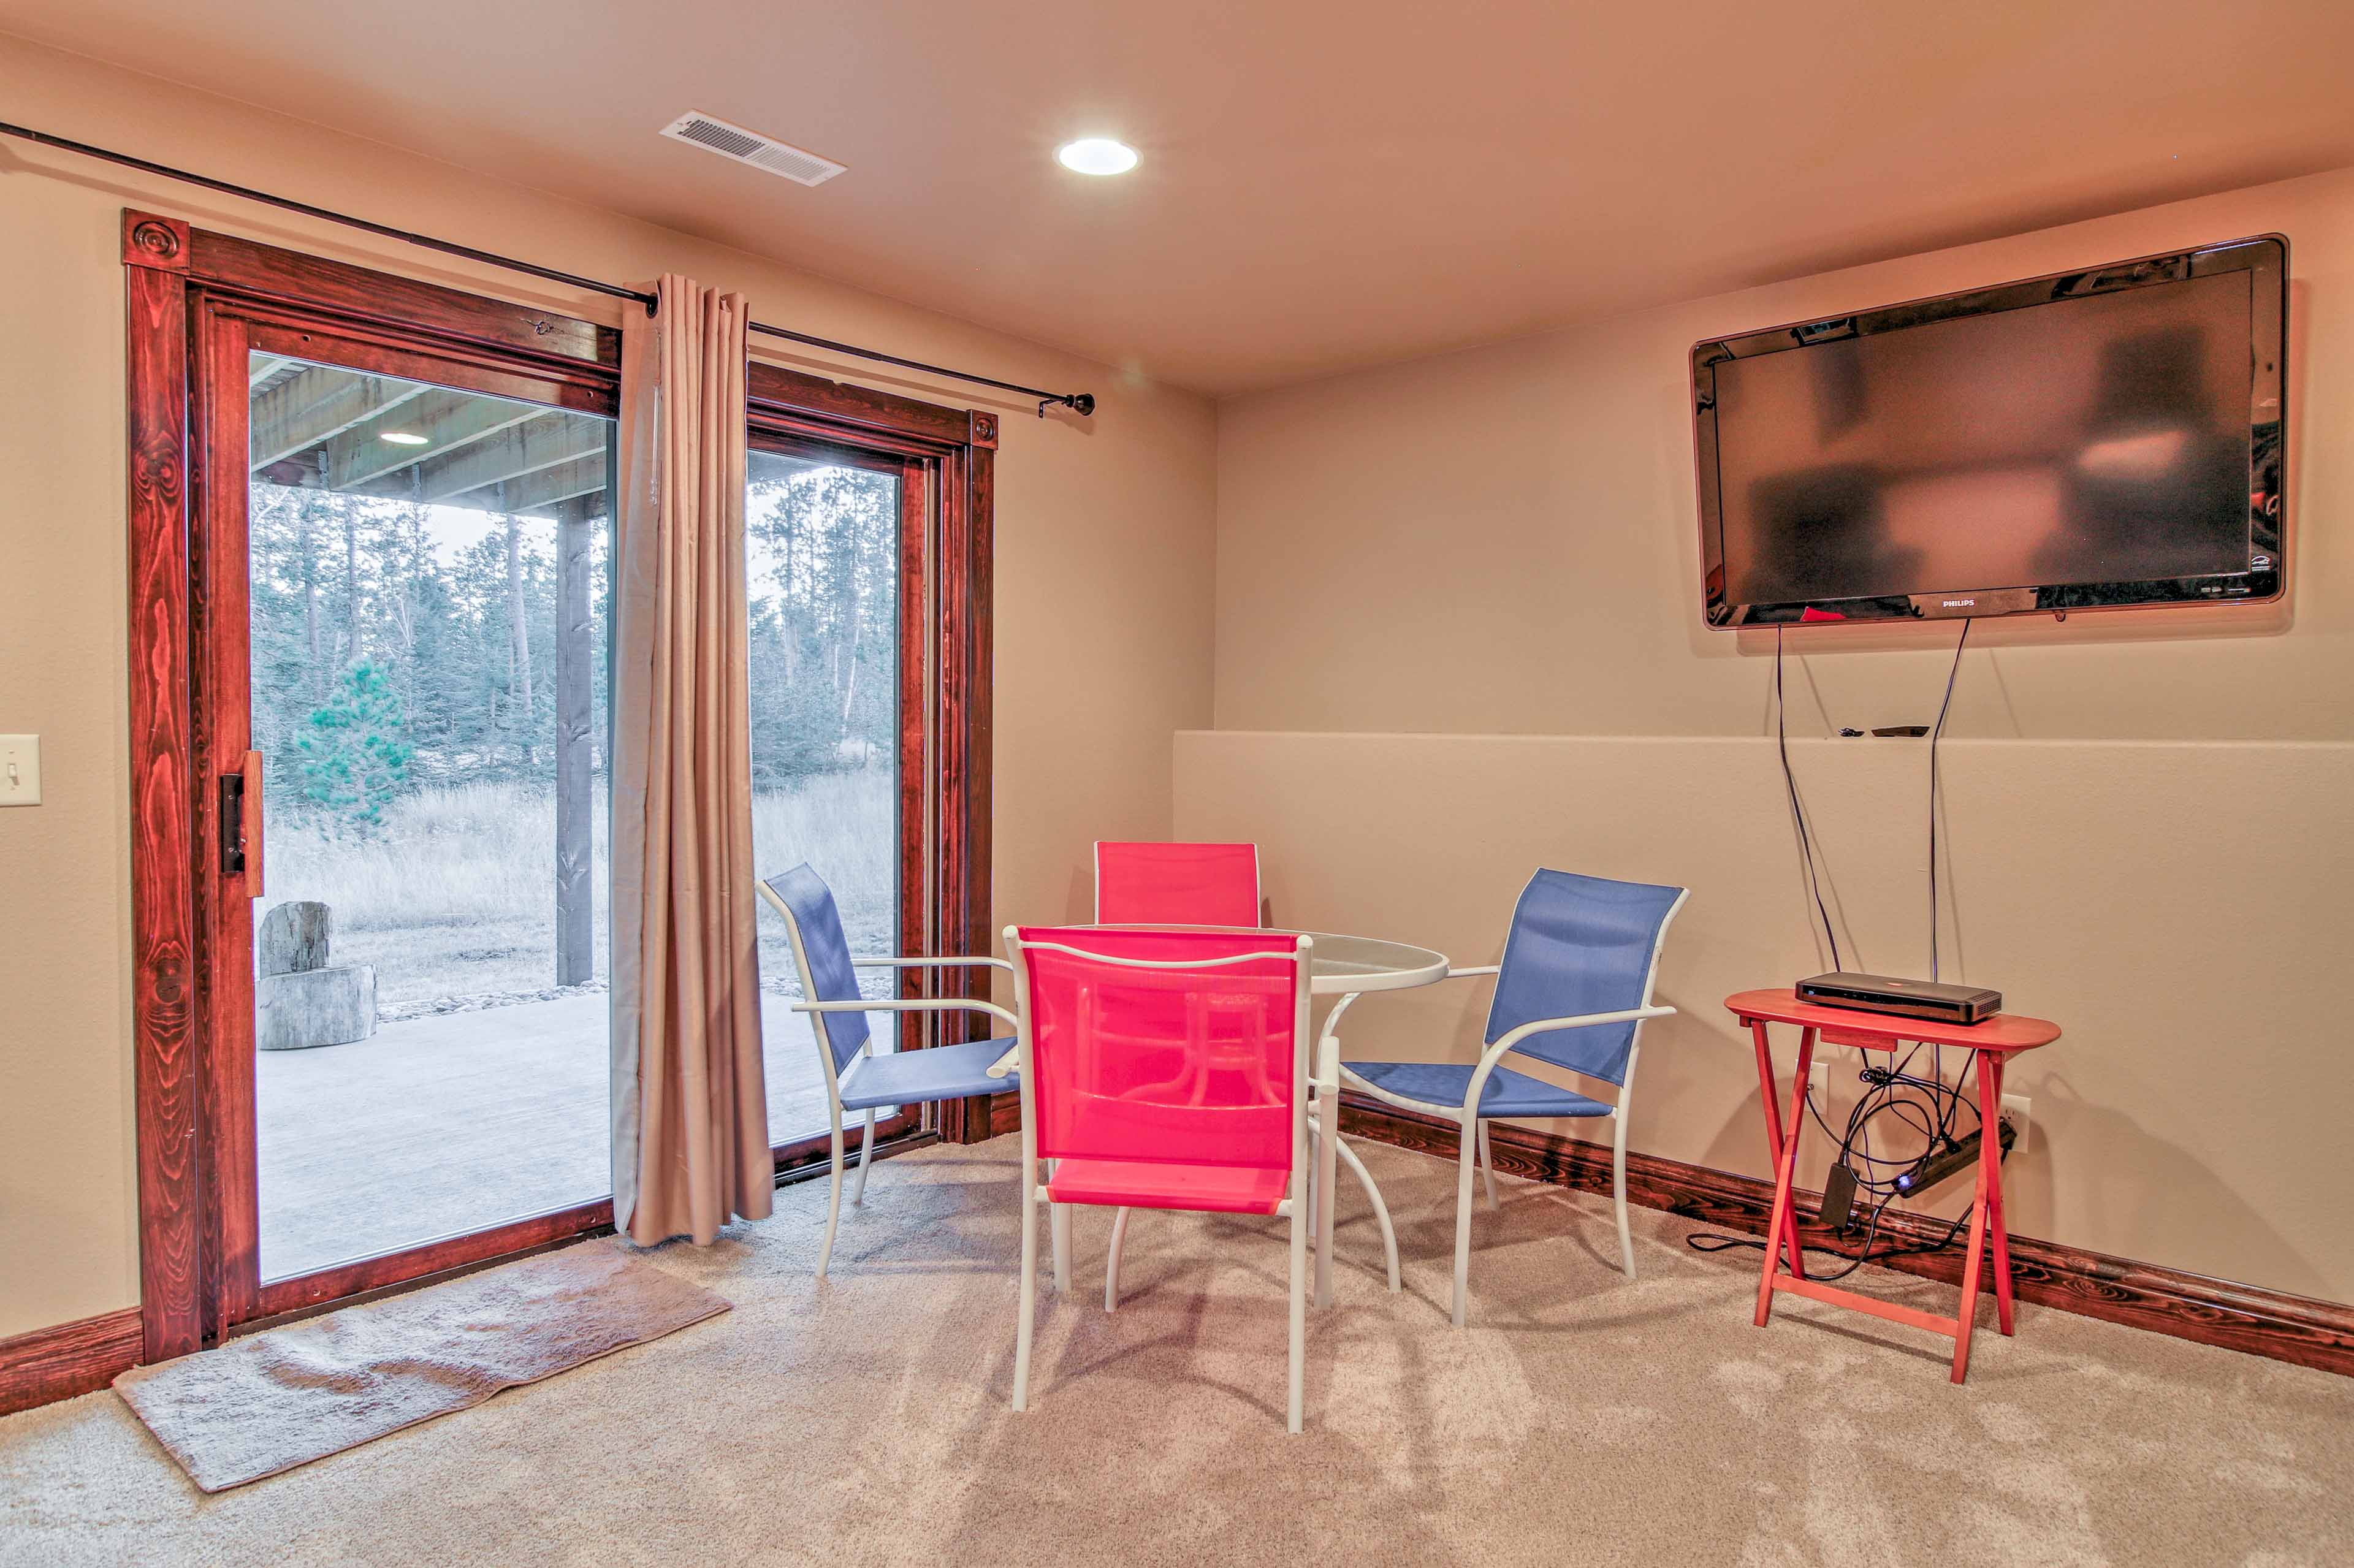 Play a quick game of poker or compete in a game on the flat-screen DirecTV in the basement space.